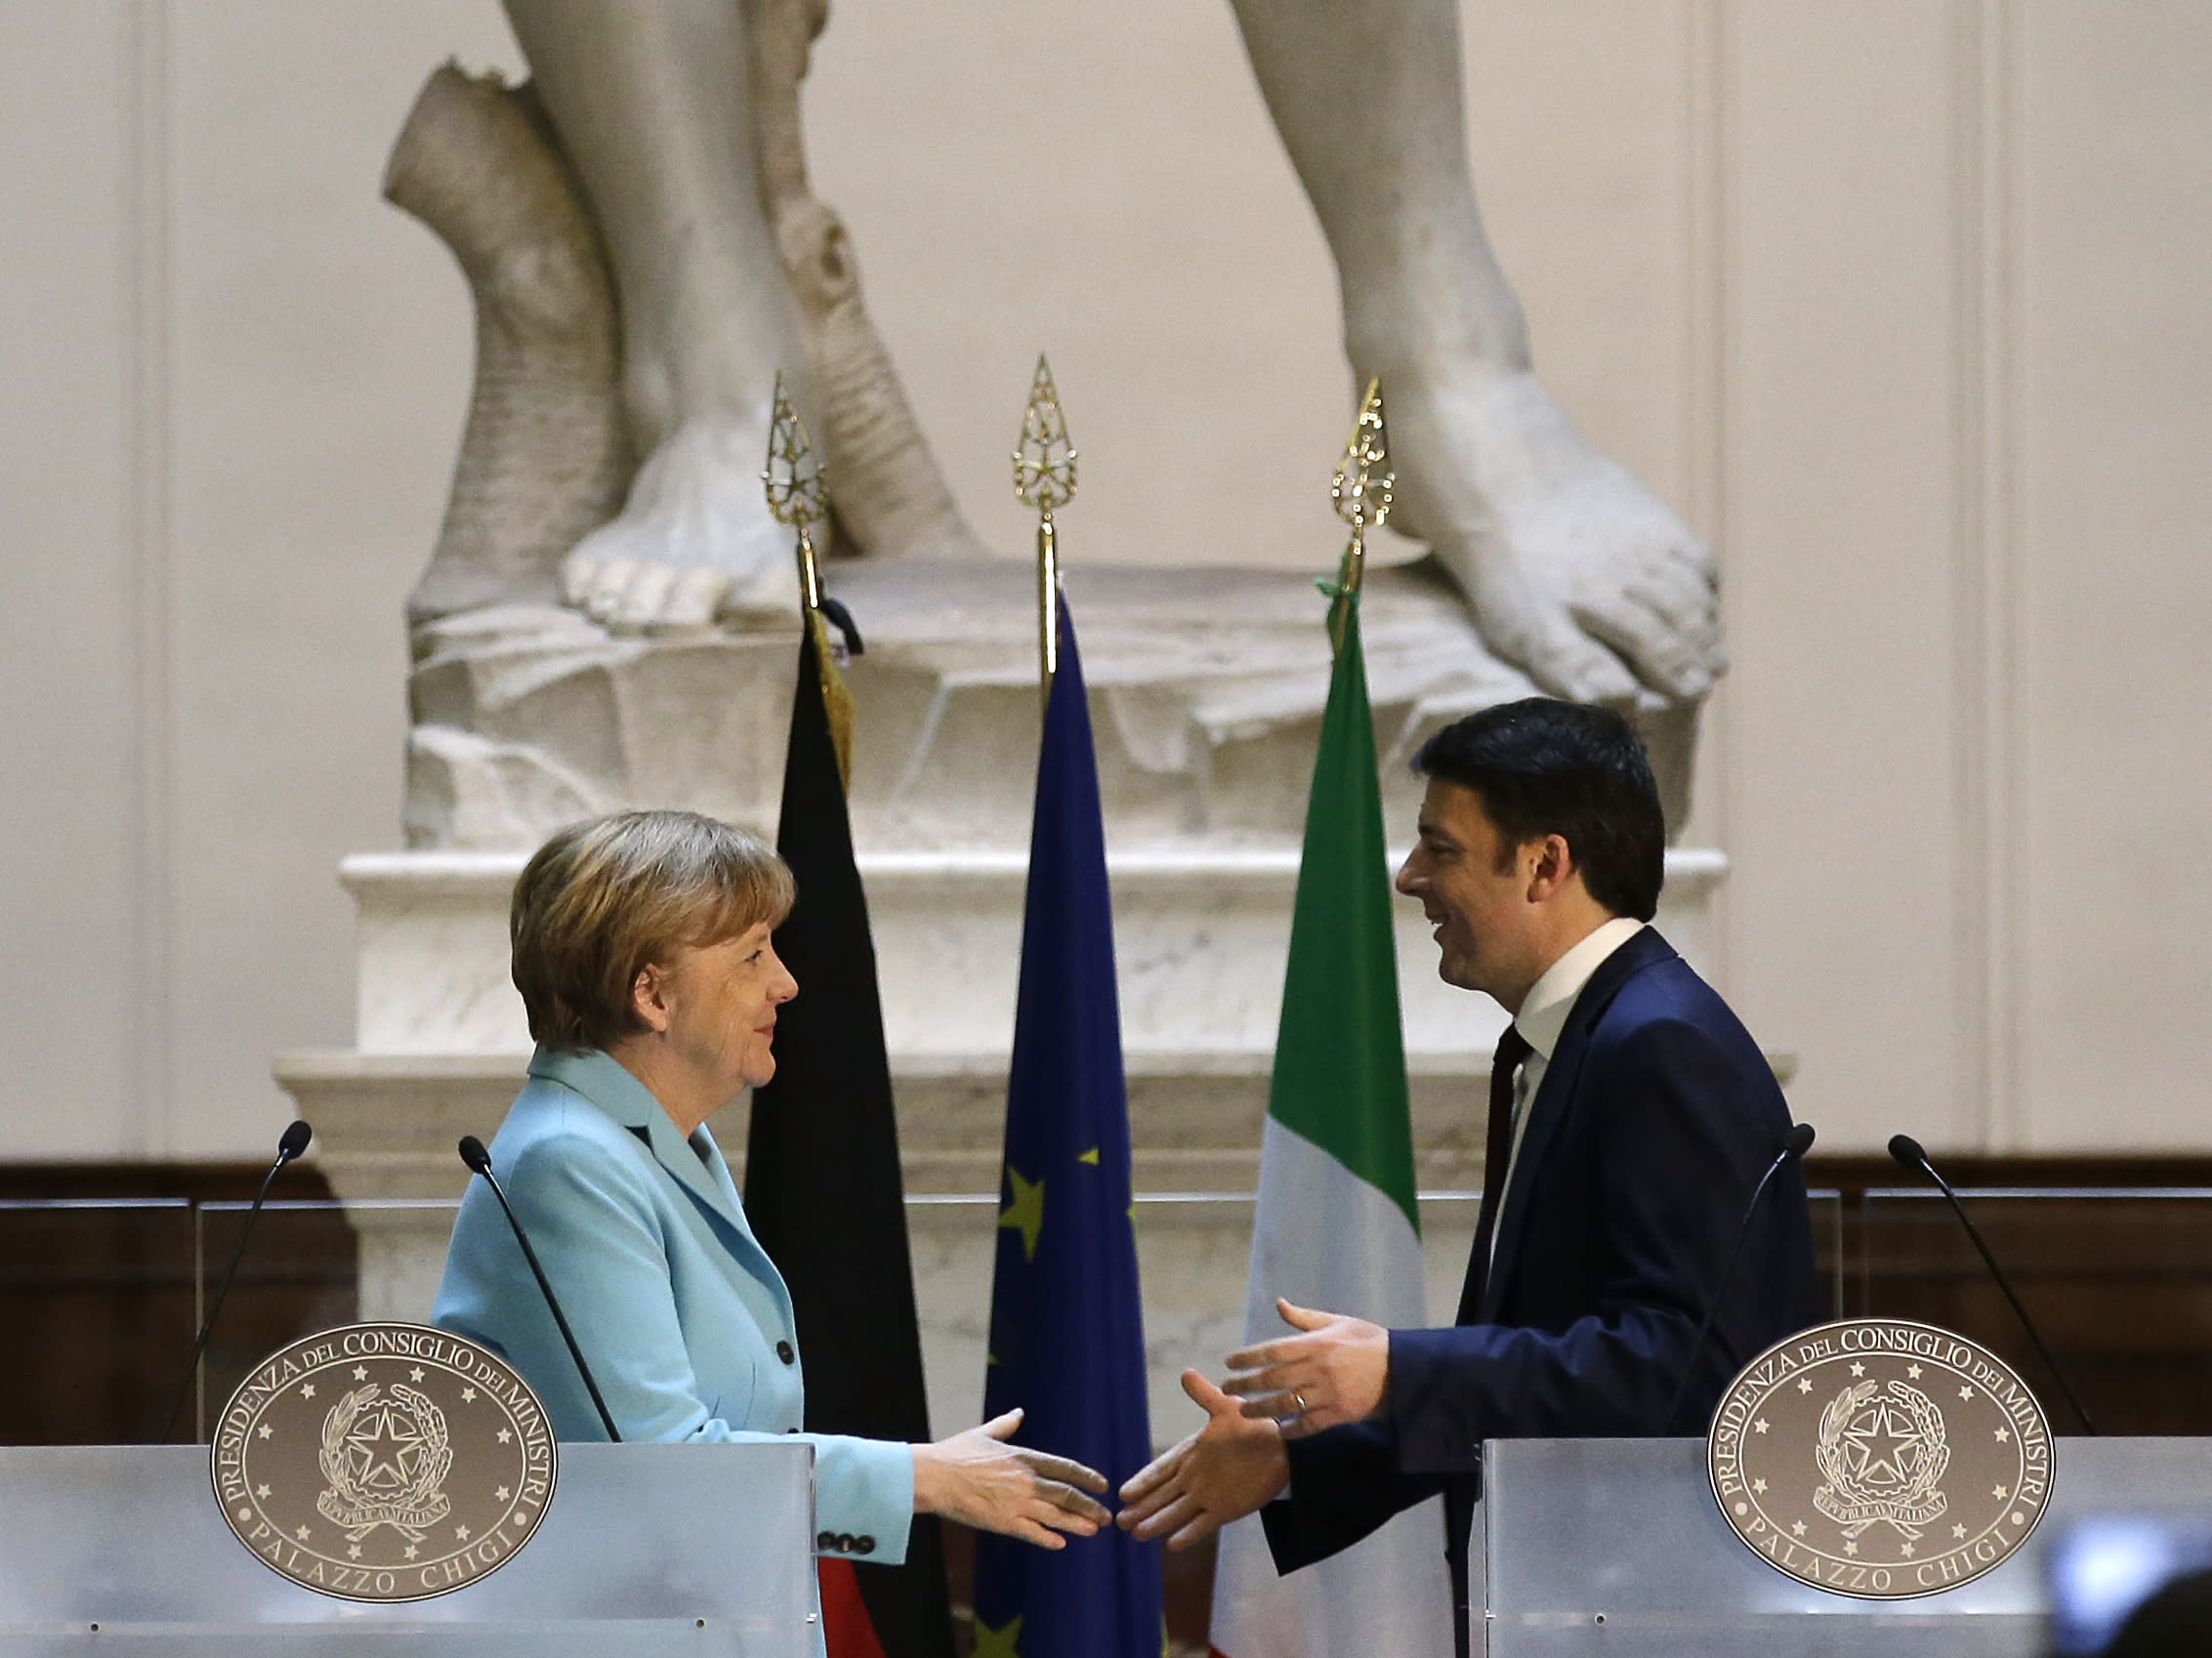 Merkel encouraged by Italian reforms